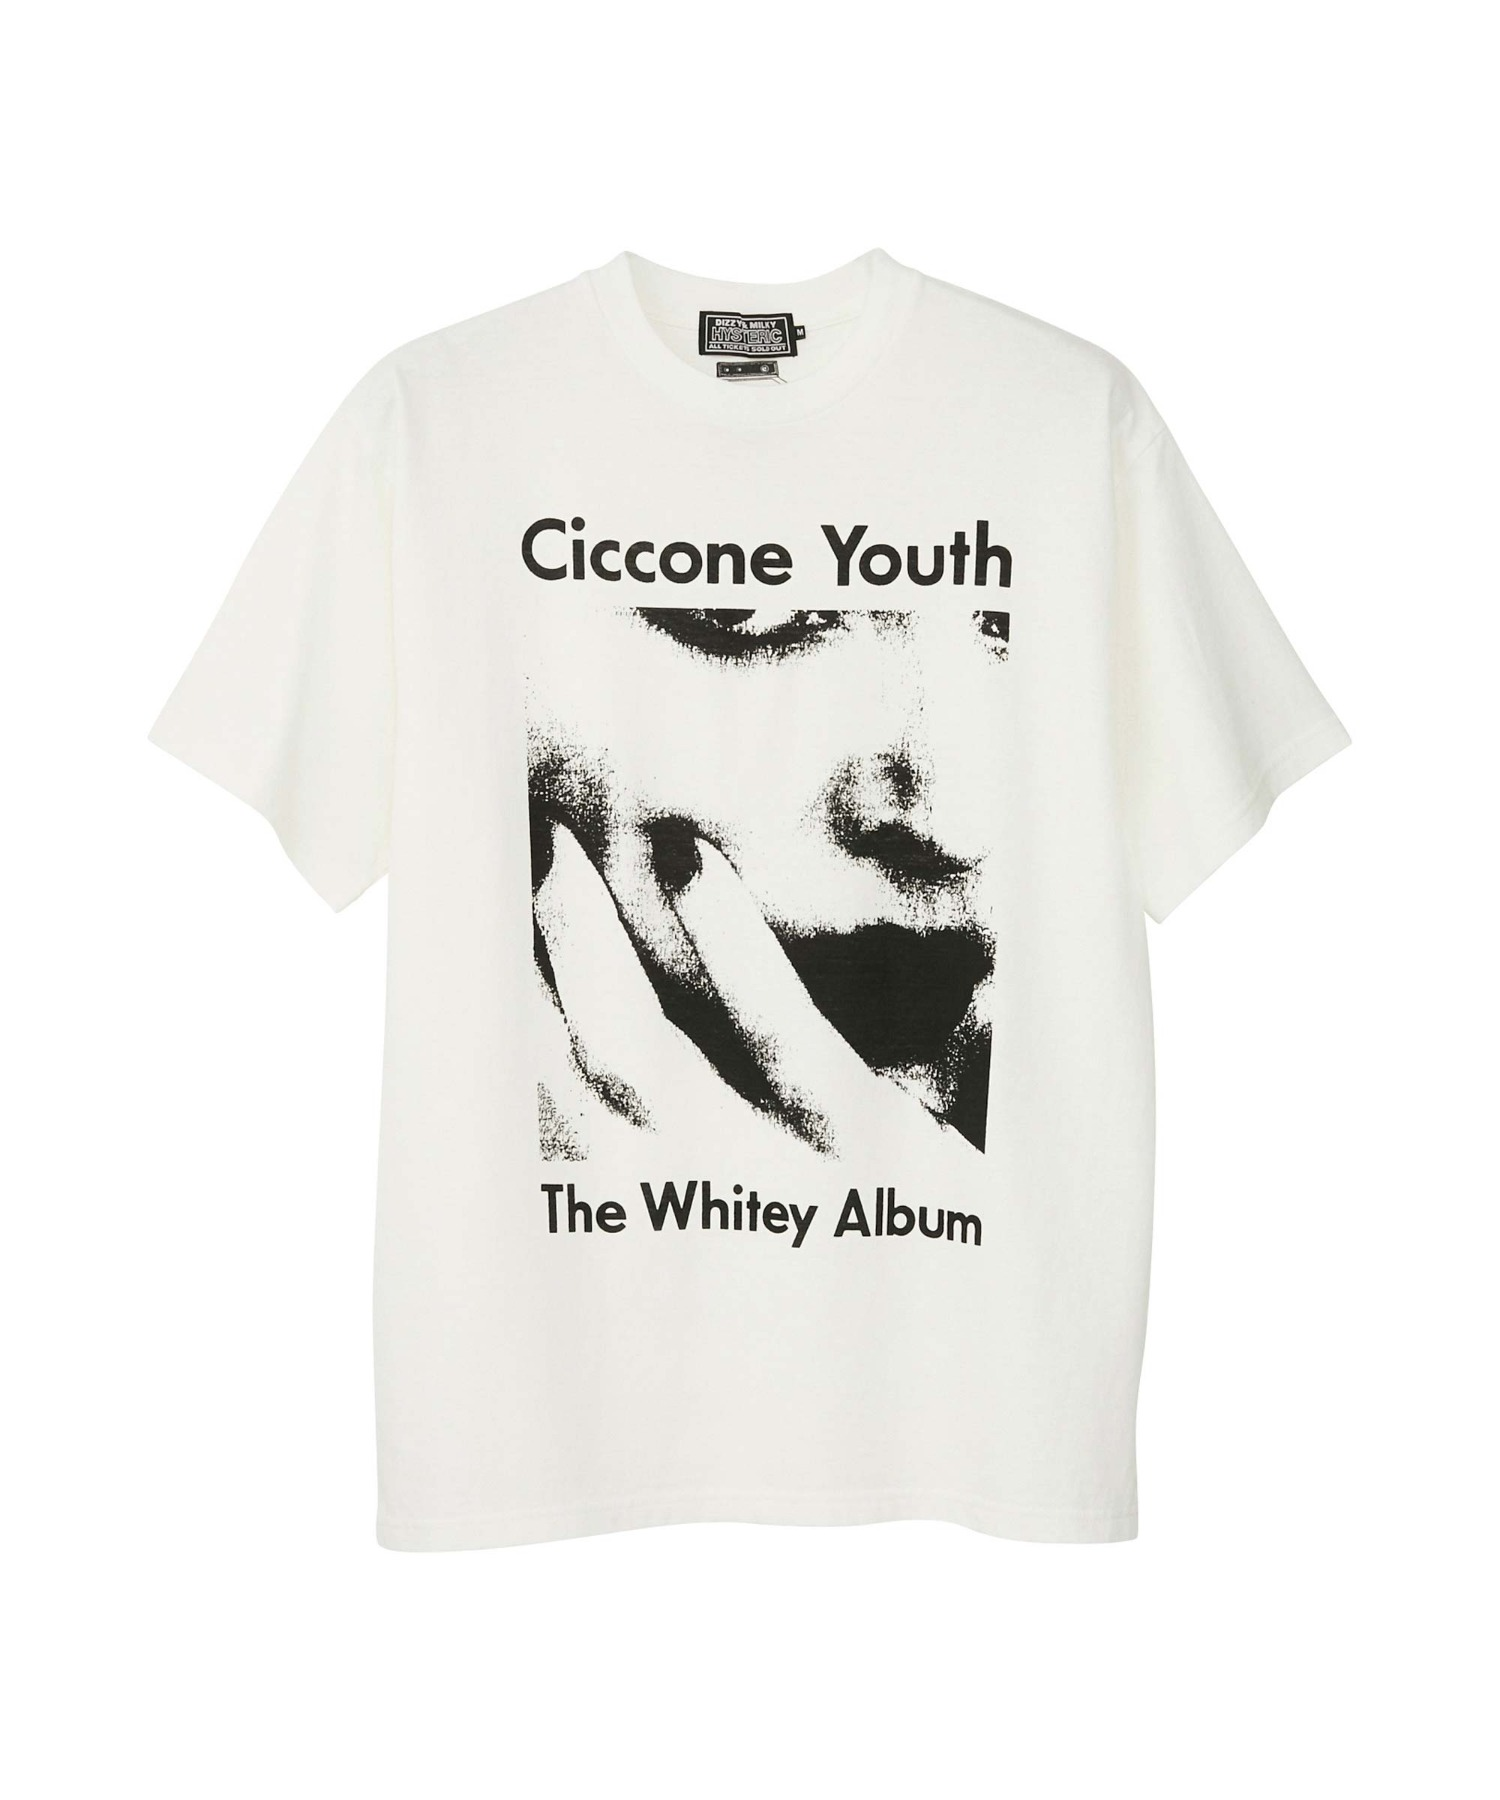 SONIC YOUTH/CICCONE YOUTH Tシャツ